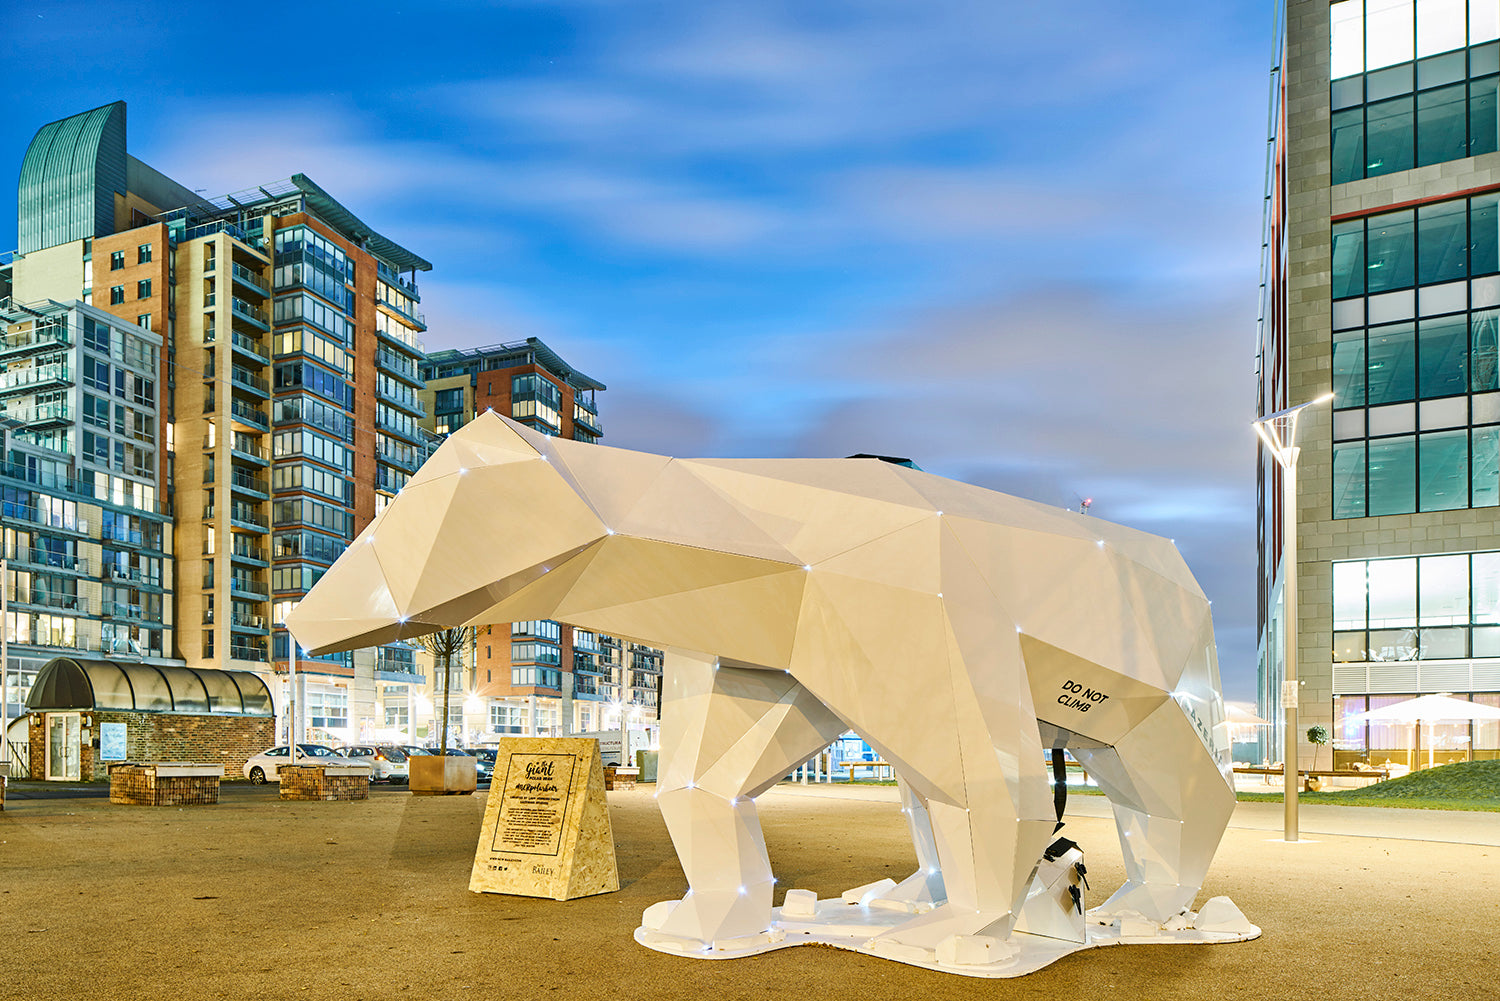 aluminium polar bear liam hopkins